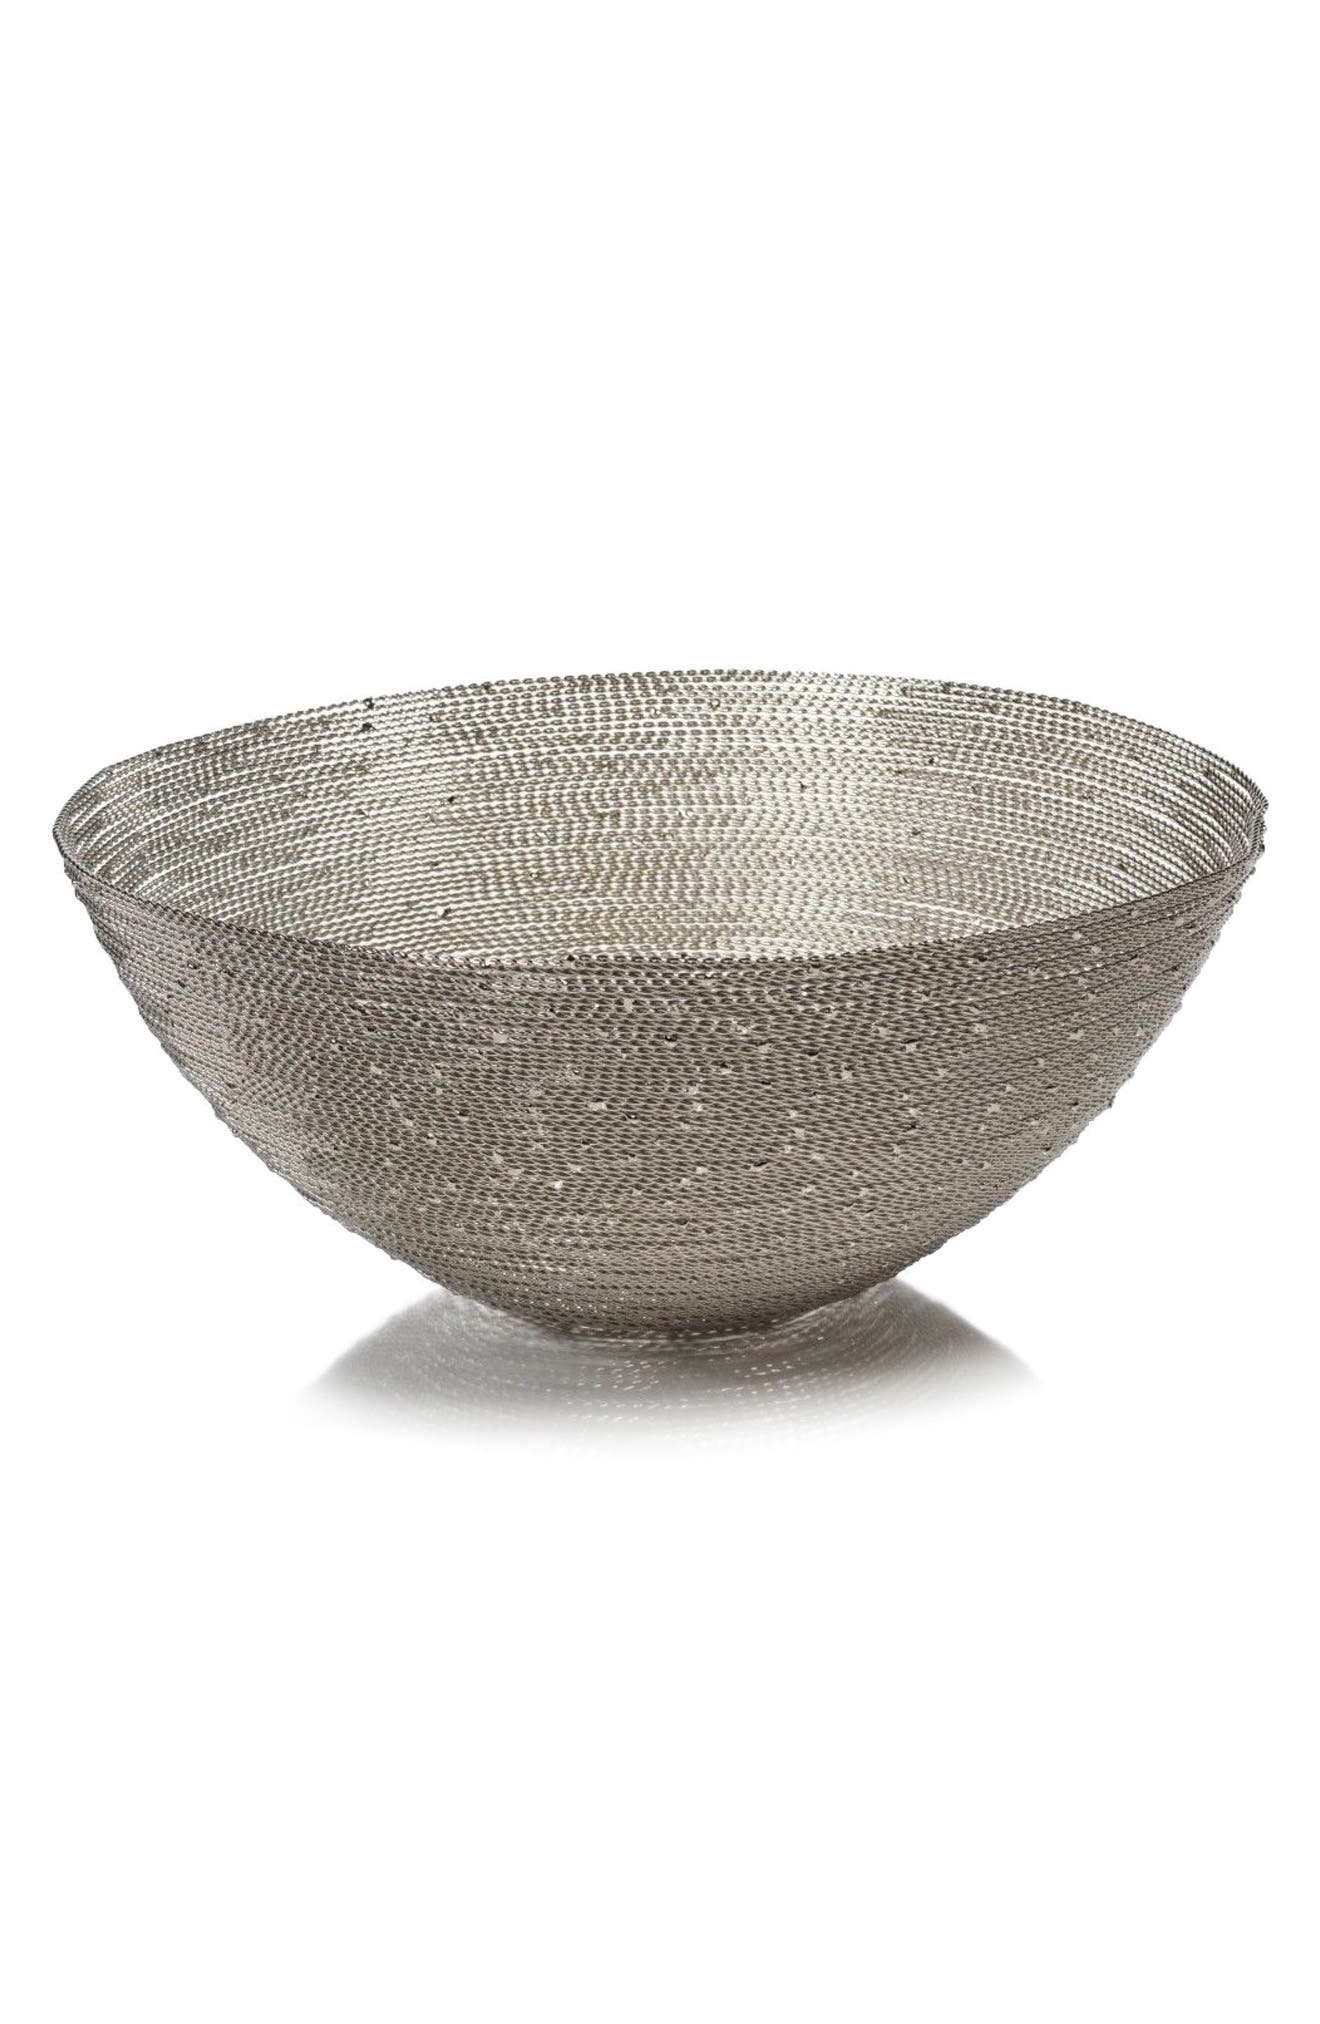 Zulu Round Woven Wire Basket,                             Main thumbnail 1, color,                             Silver